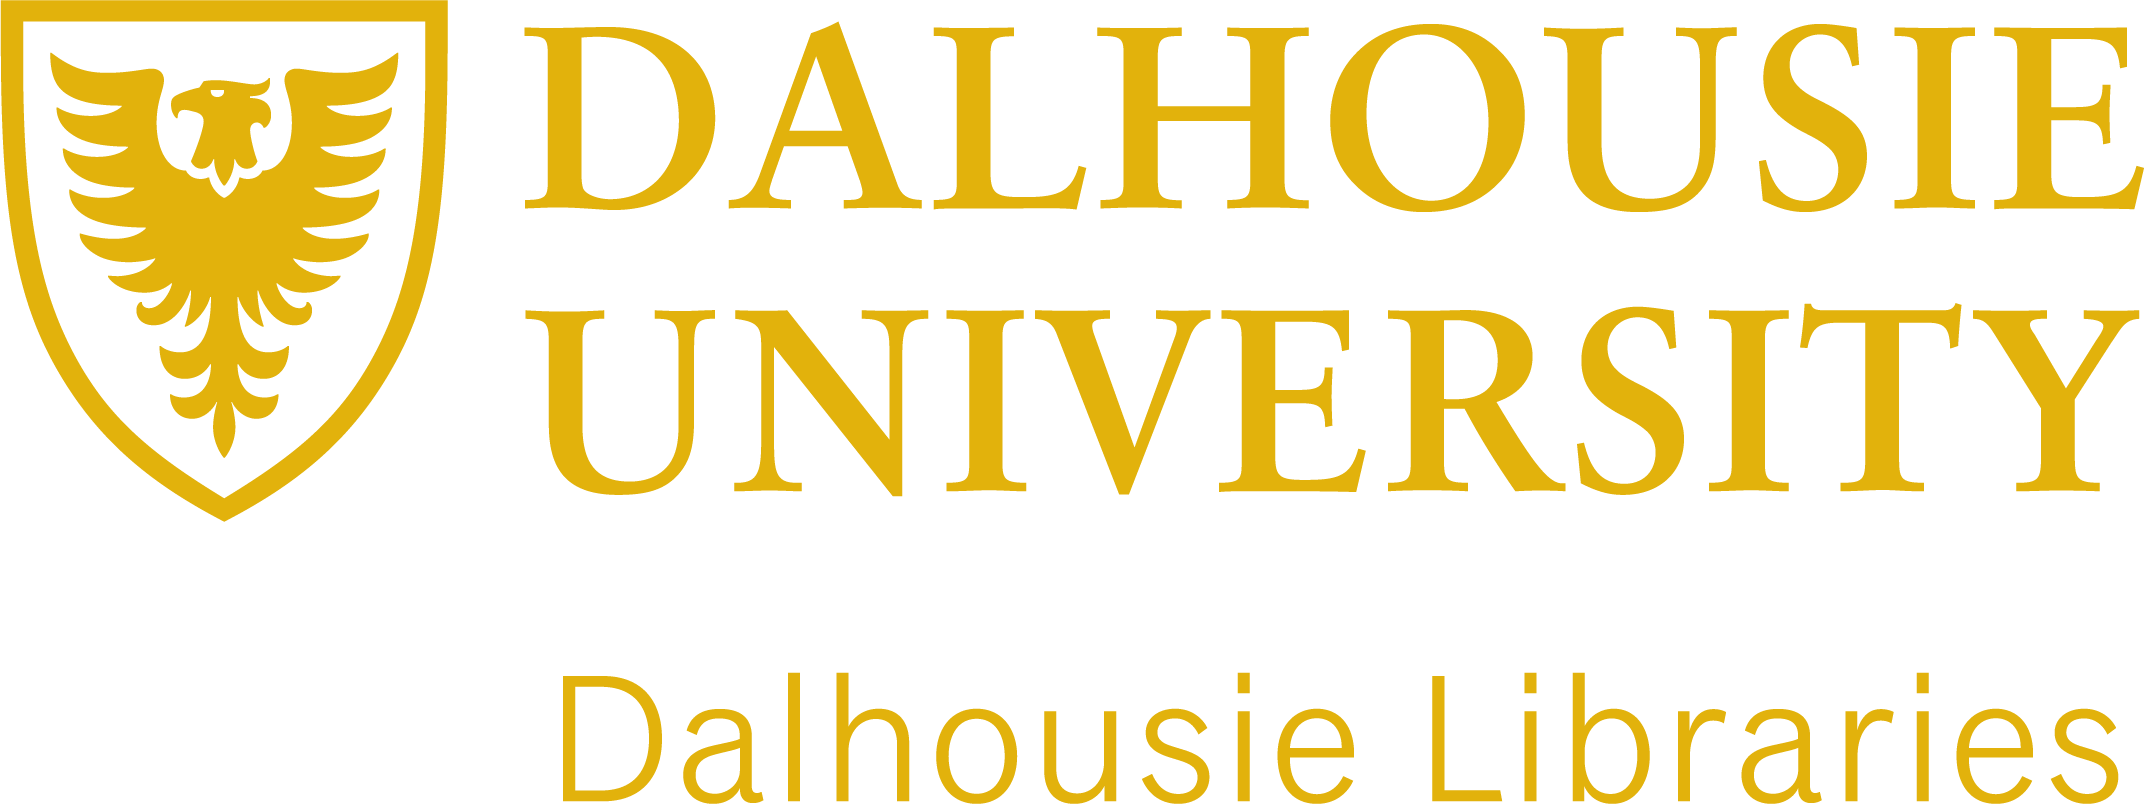 DalhousieLibraries